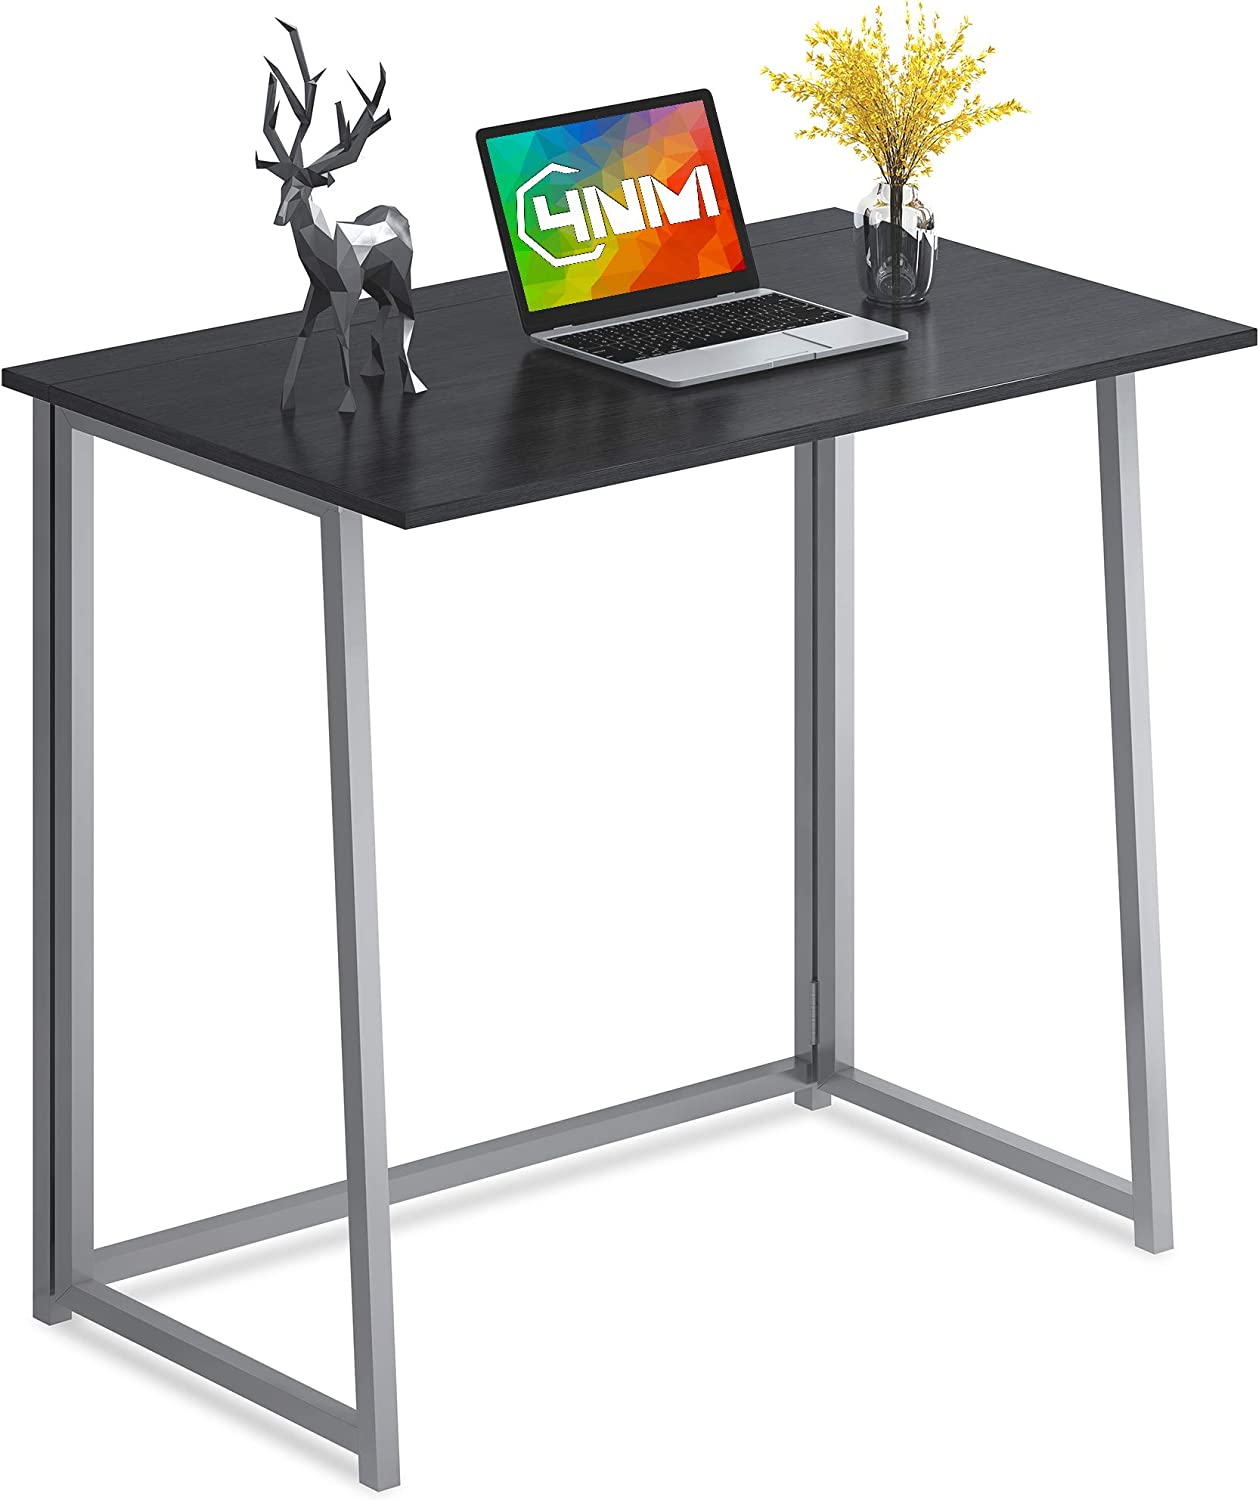 4NM Folding Desk, Small Computer Desk Home Office Desk Foldable Table Workstation for Small Places (Black and Silver)